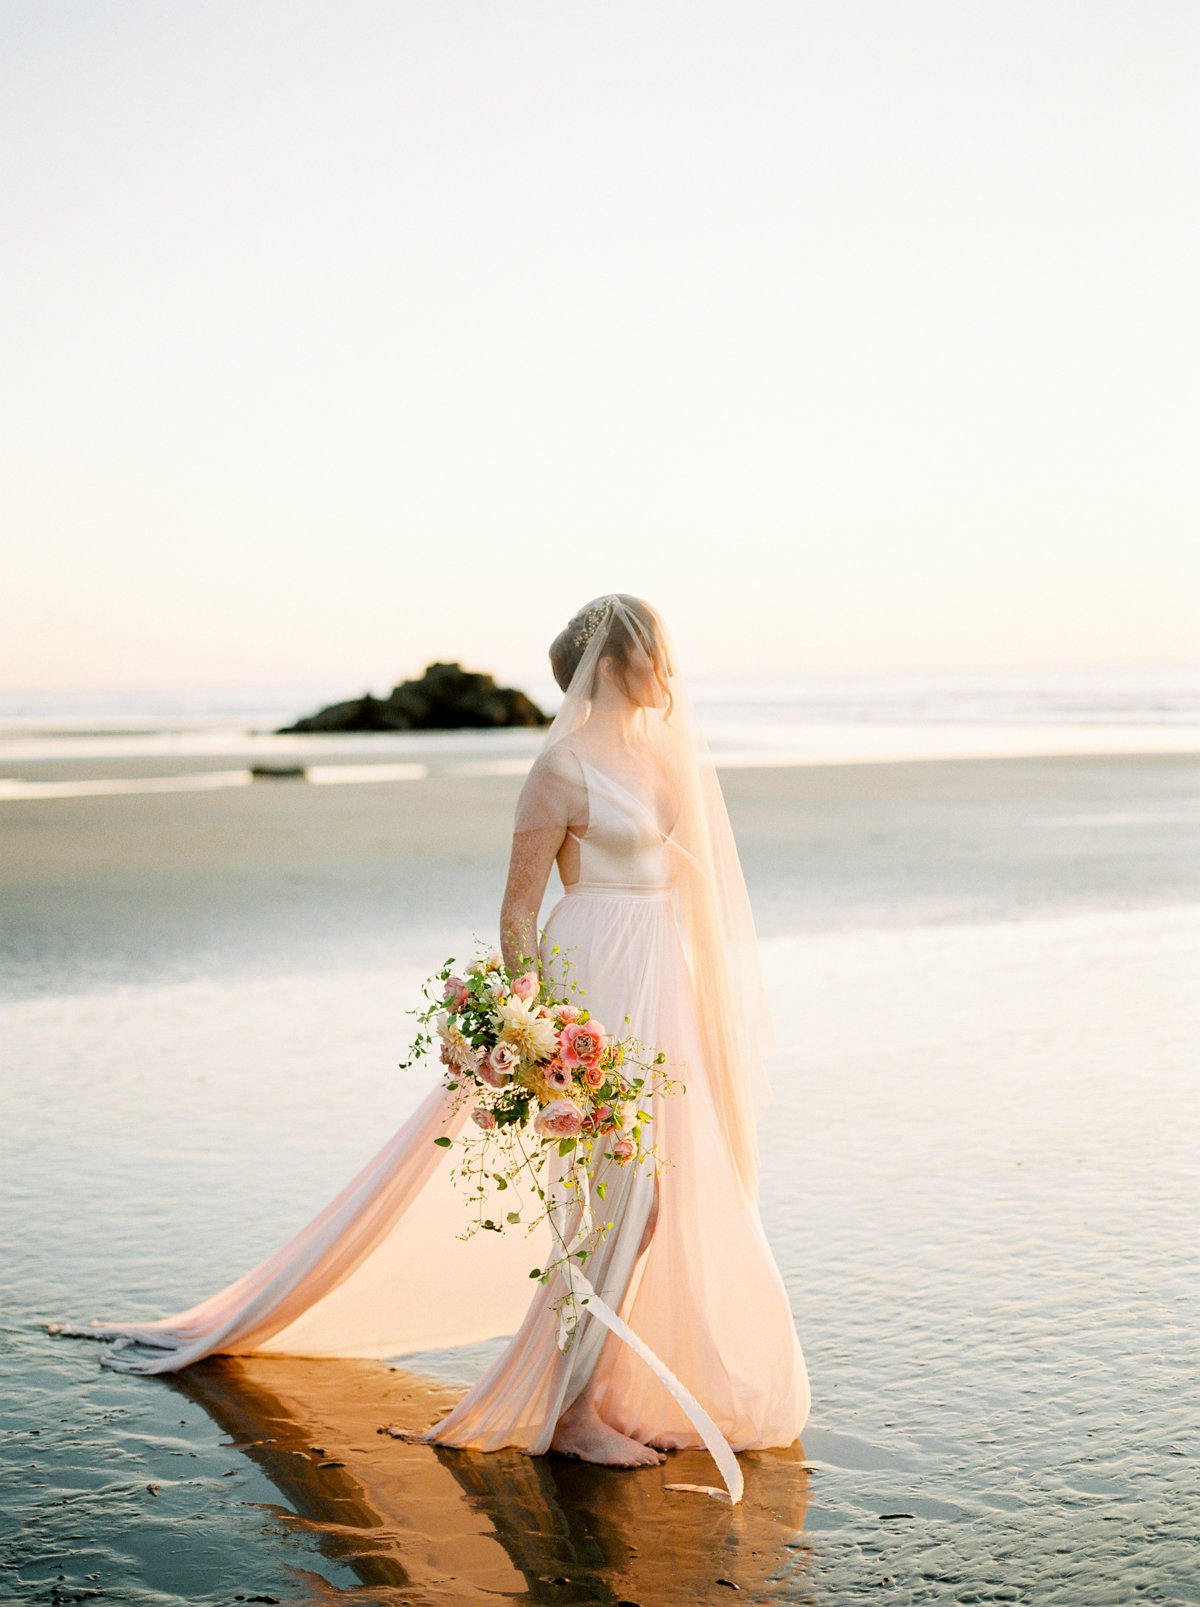 vancouver wedding photographer elopement photographer teryn lee beach elopement wedding